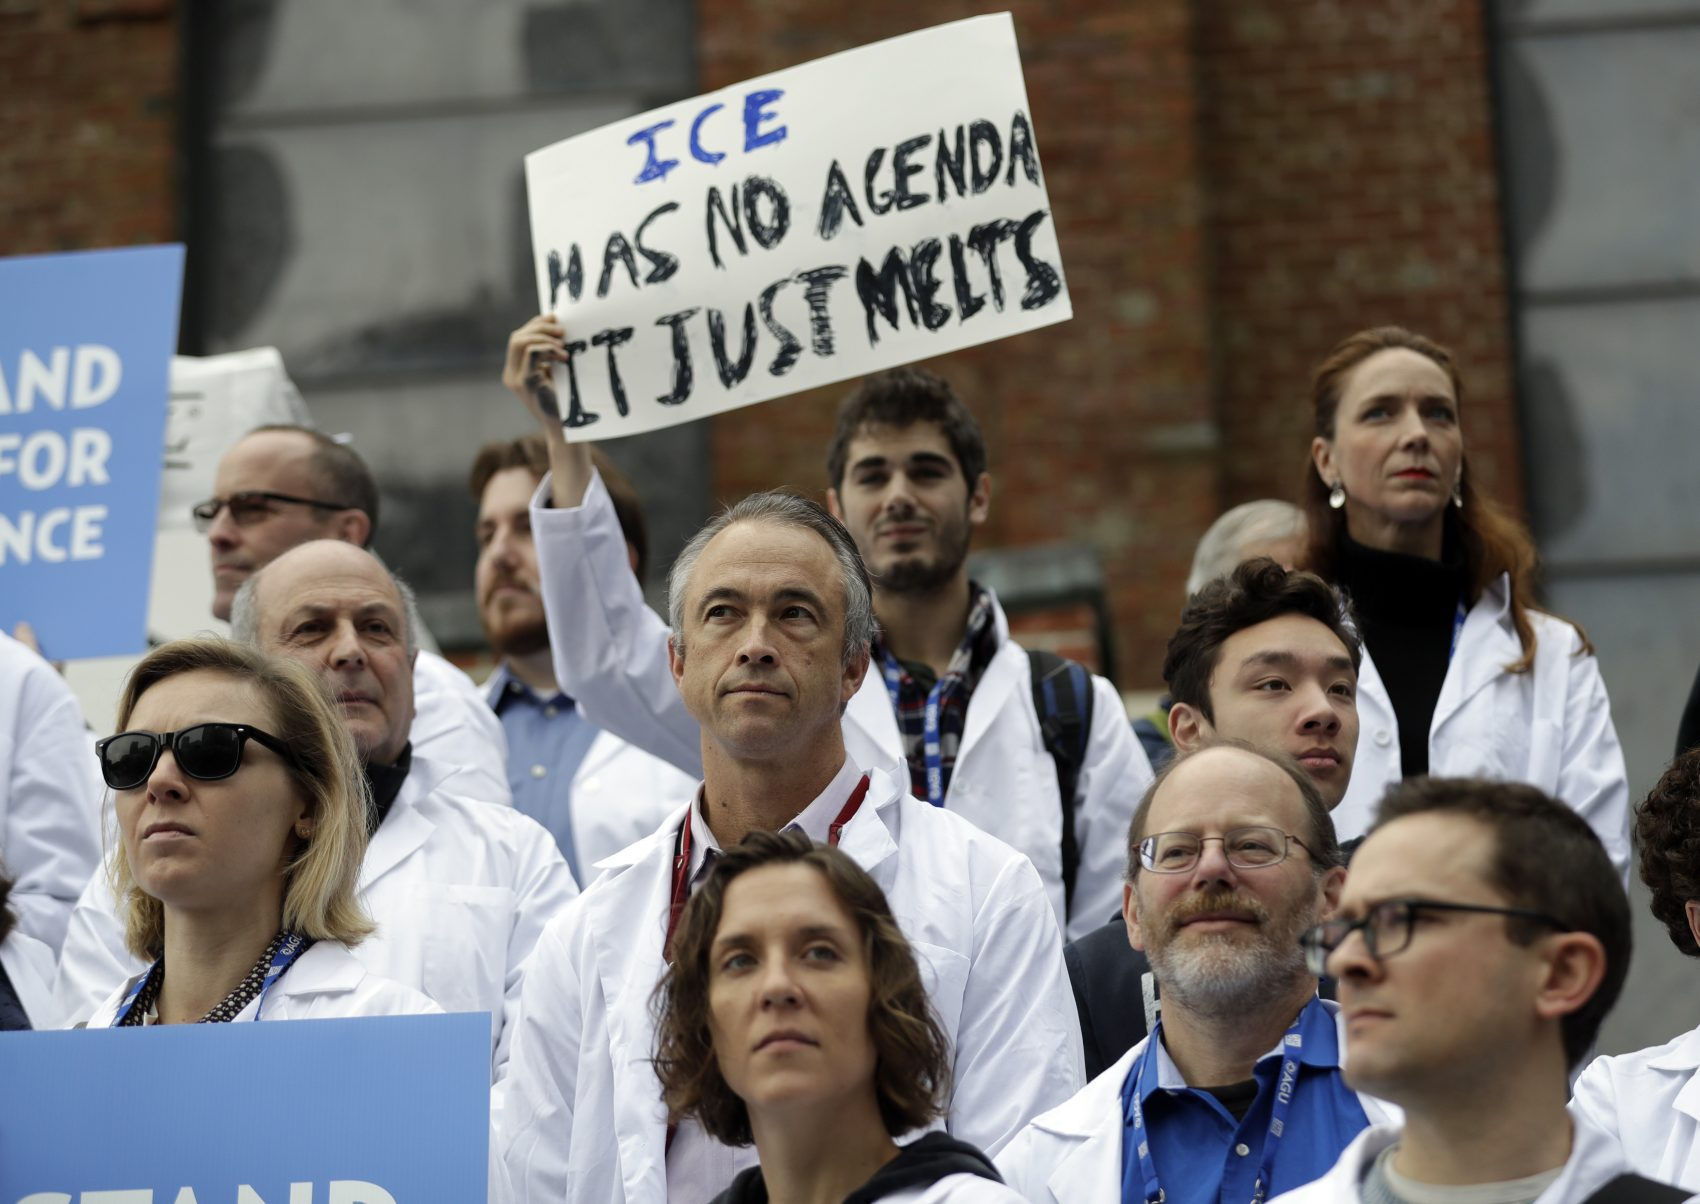 The backlash against Trump's environmental assault will come from the young, writes Miles Howard. And they will win. Pictured: Scientists at a Dec. 13, 2016 rally in San Francisco to call attention to attacks by the incoming Trump administration against climate change. (Marcio Jose Sanchez/AP)